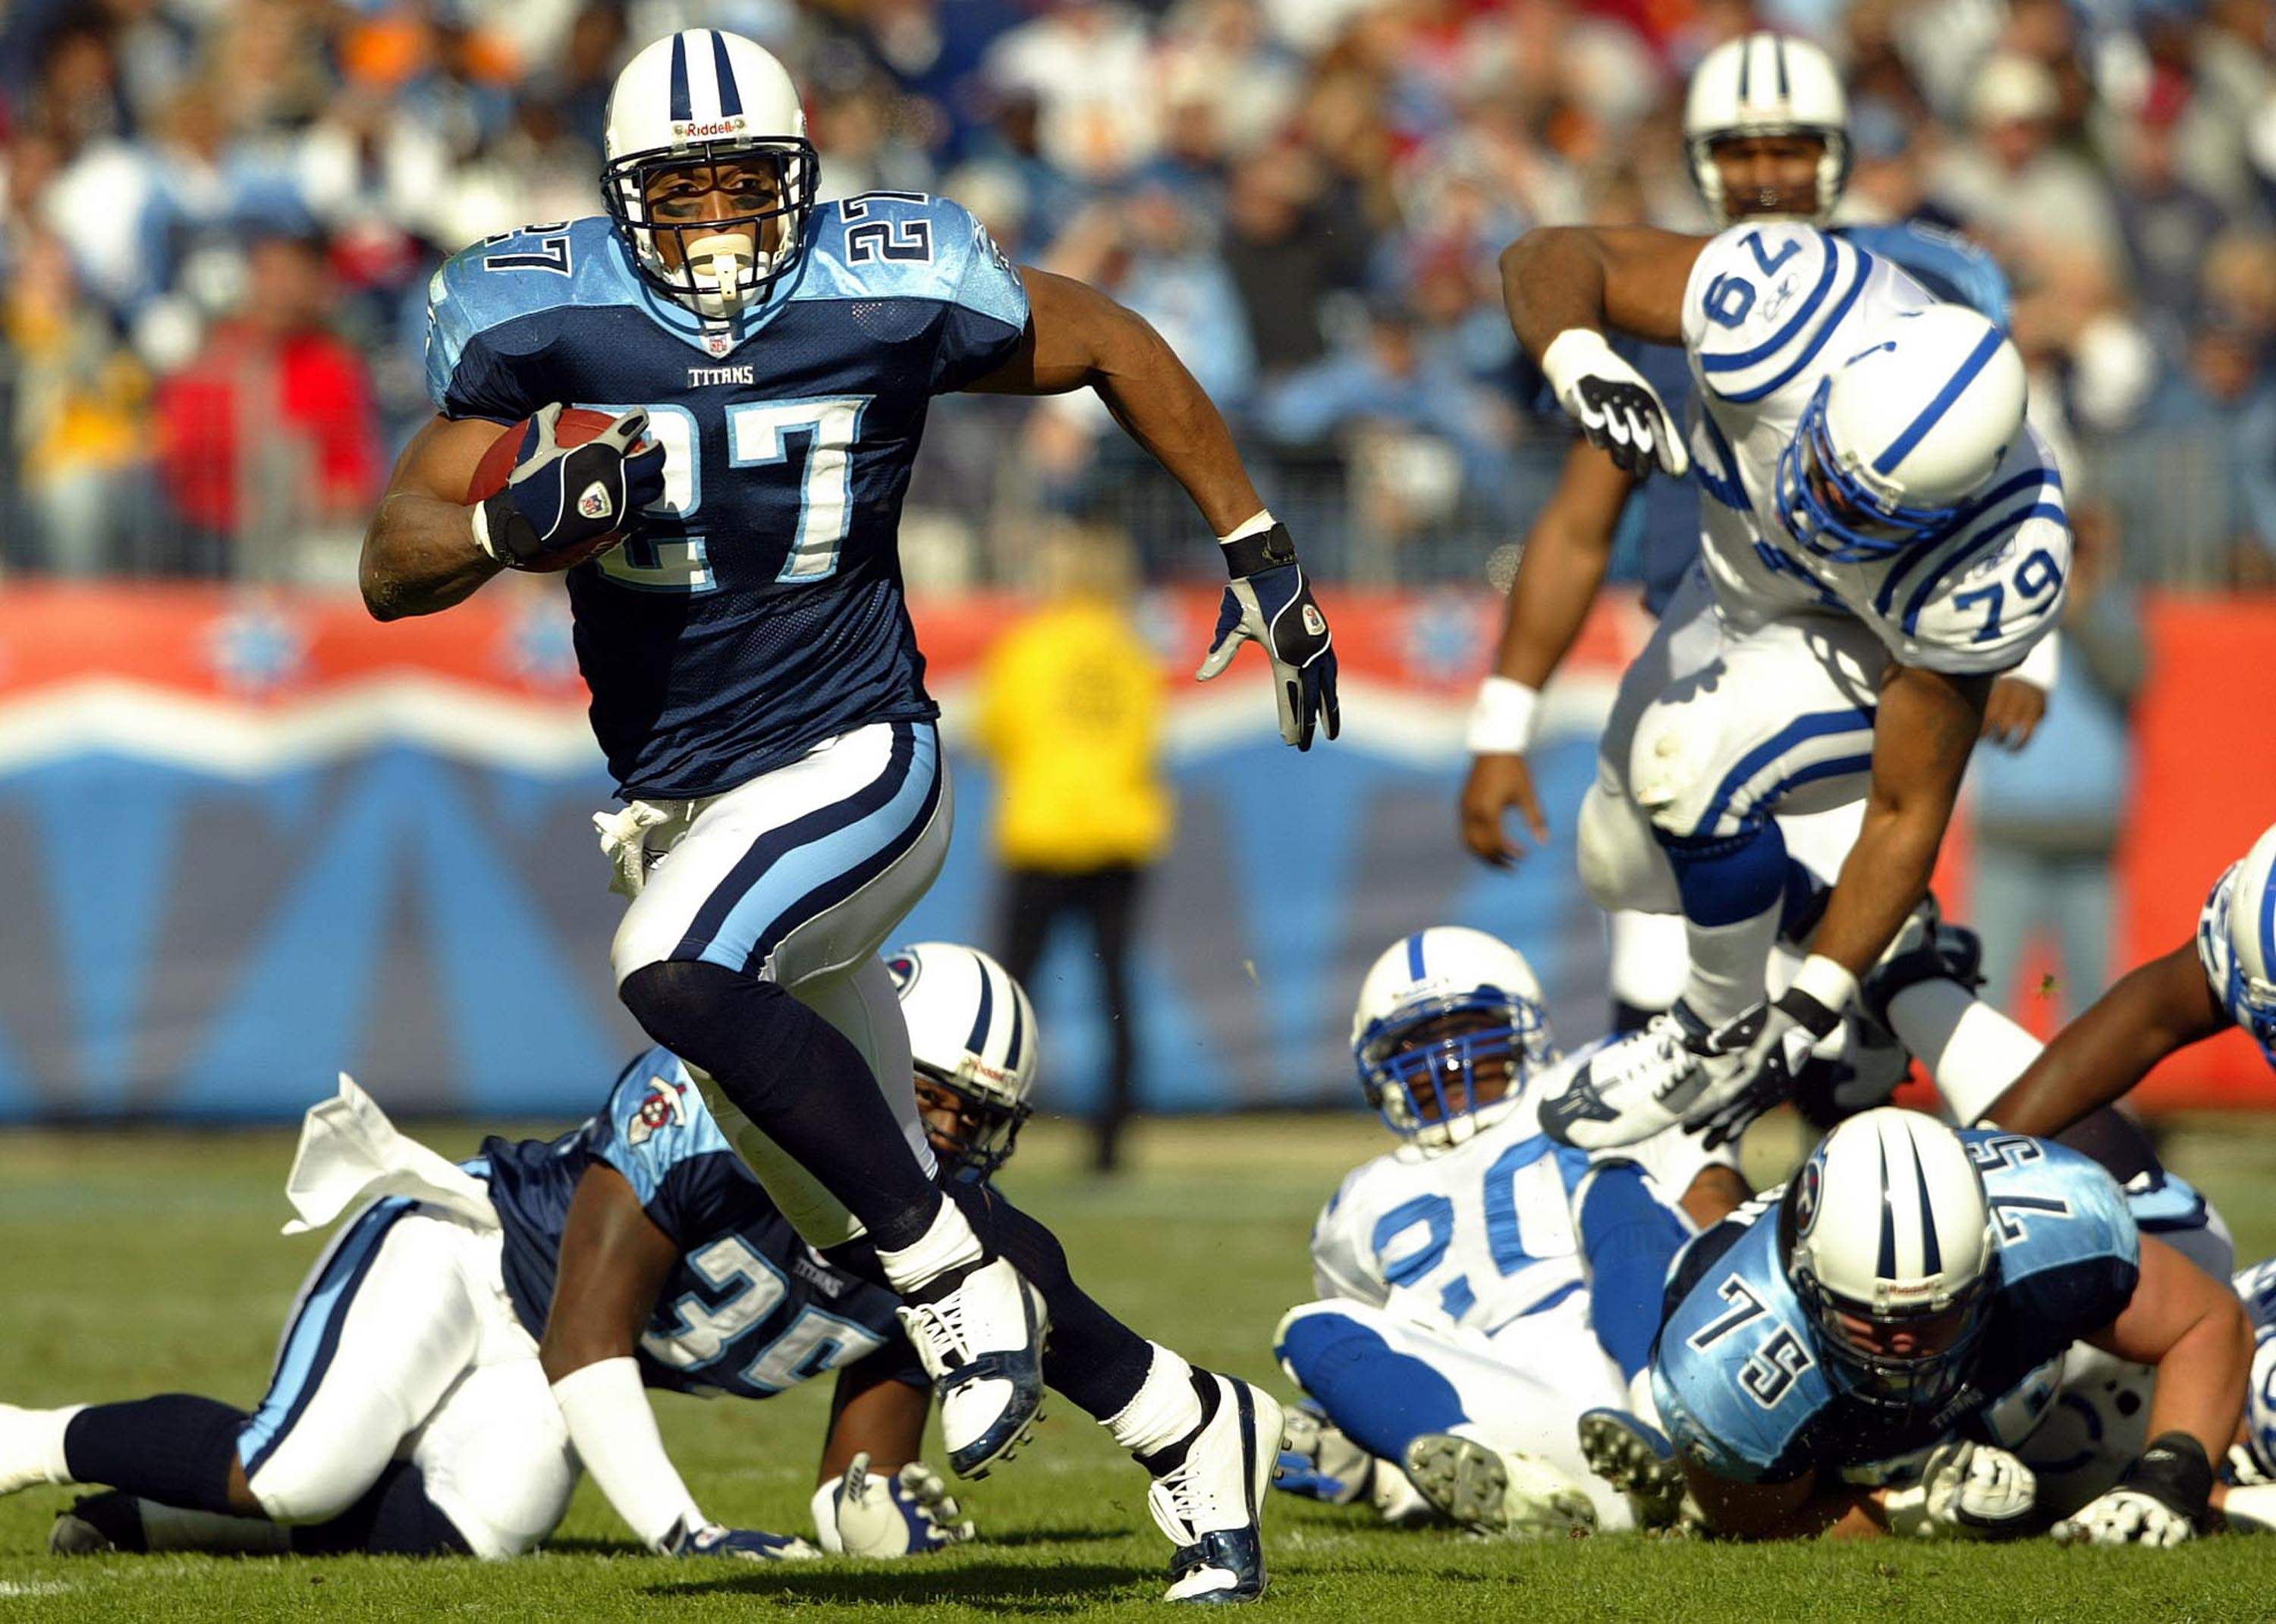 NASHVILLE,TN - DECEMBER 7:  Eddie George #27 of the Tennessee Titans runs with the ball against the Indianapolis Colts during the Colts 29-27 victory  on December 7, 2003 at The Coliseum in Nashville, Tennessee.  (Photo by Andy Lyons/Getty Images)